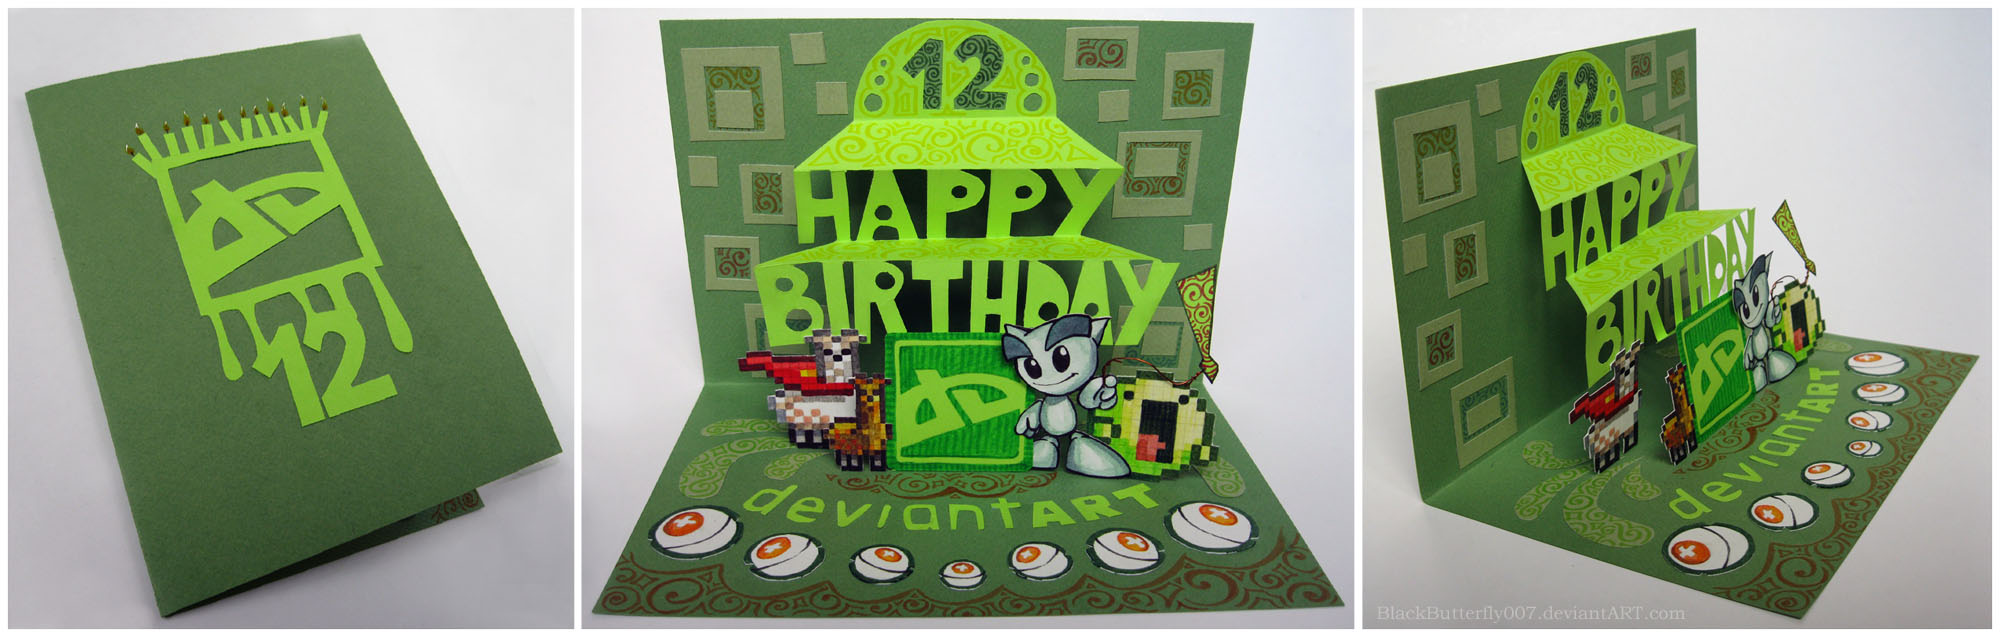 dA 12th B-Day card by Si3art